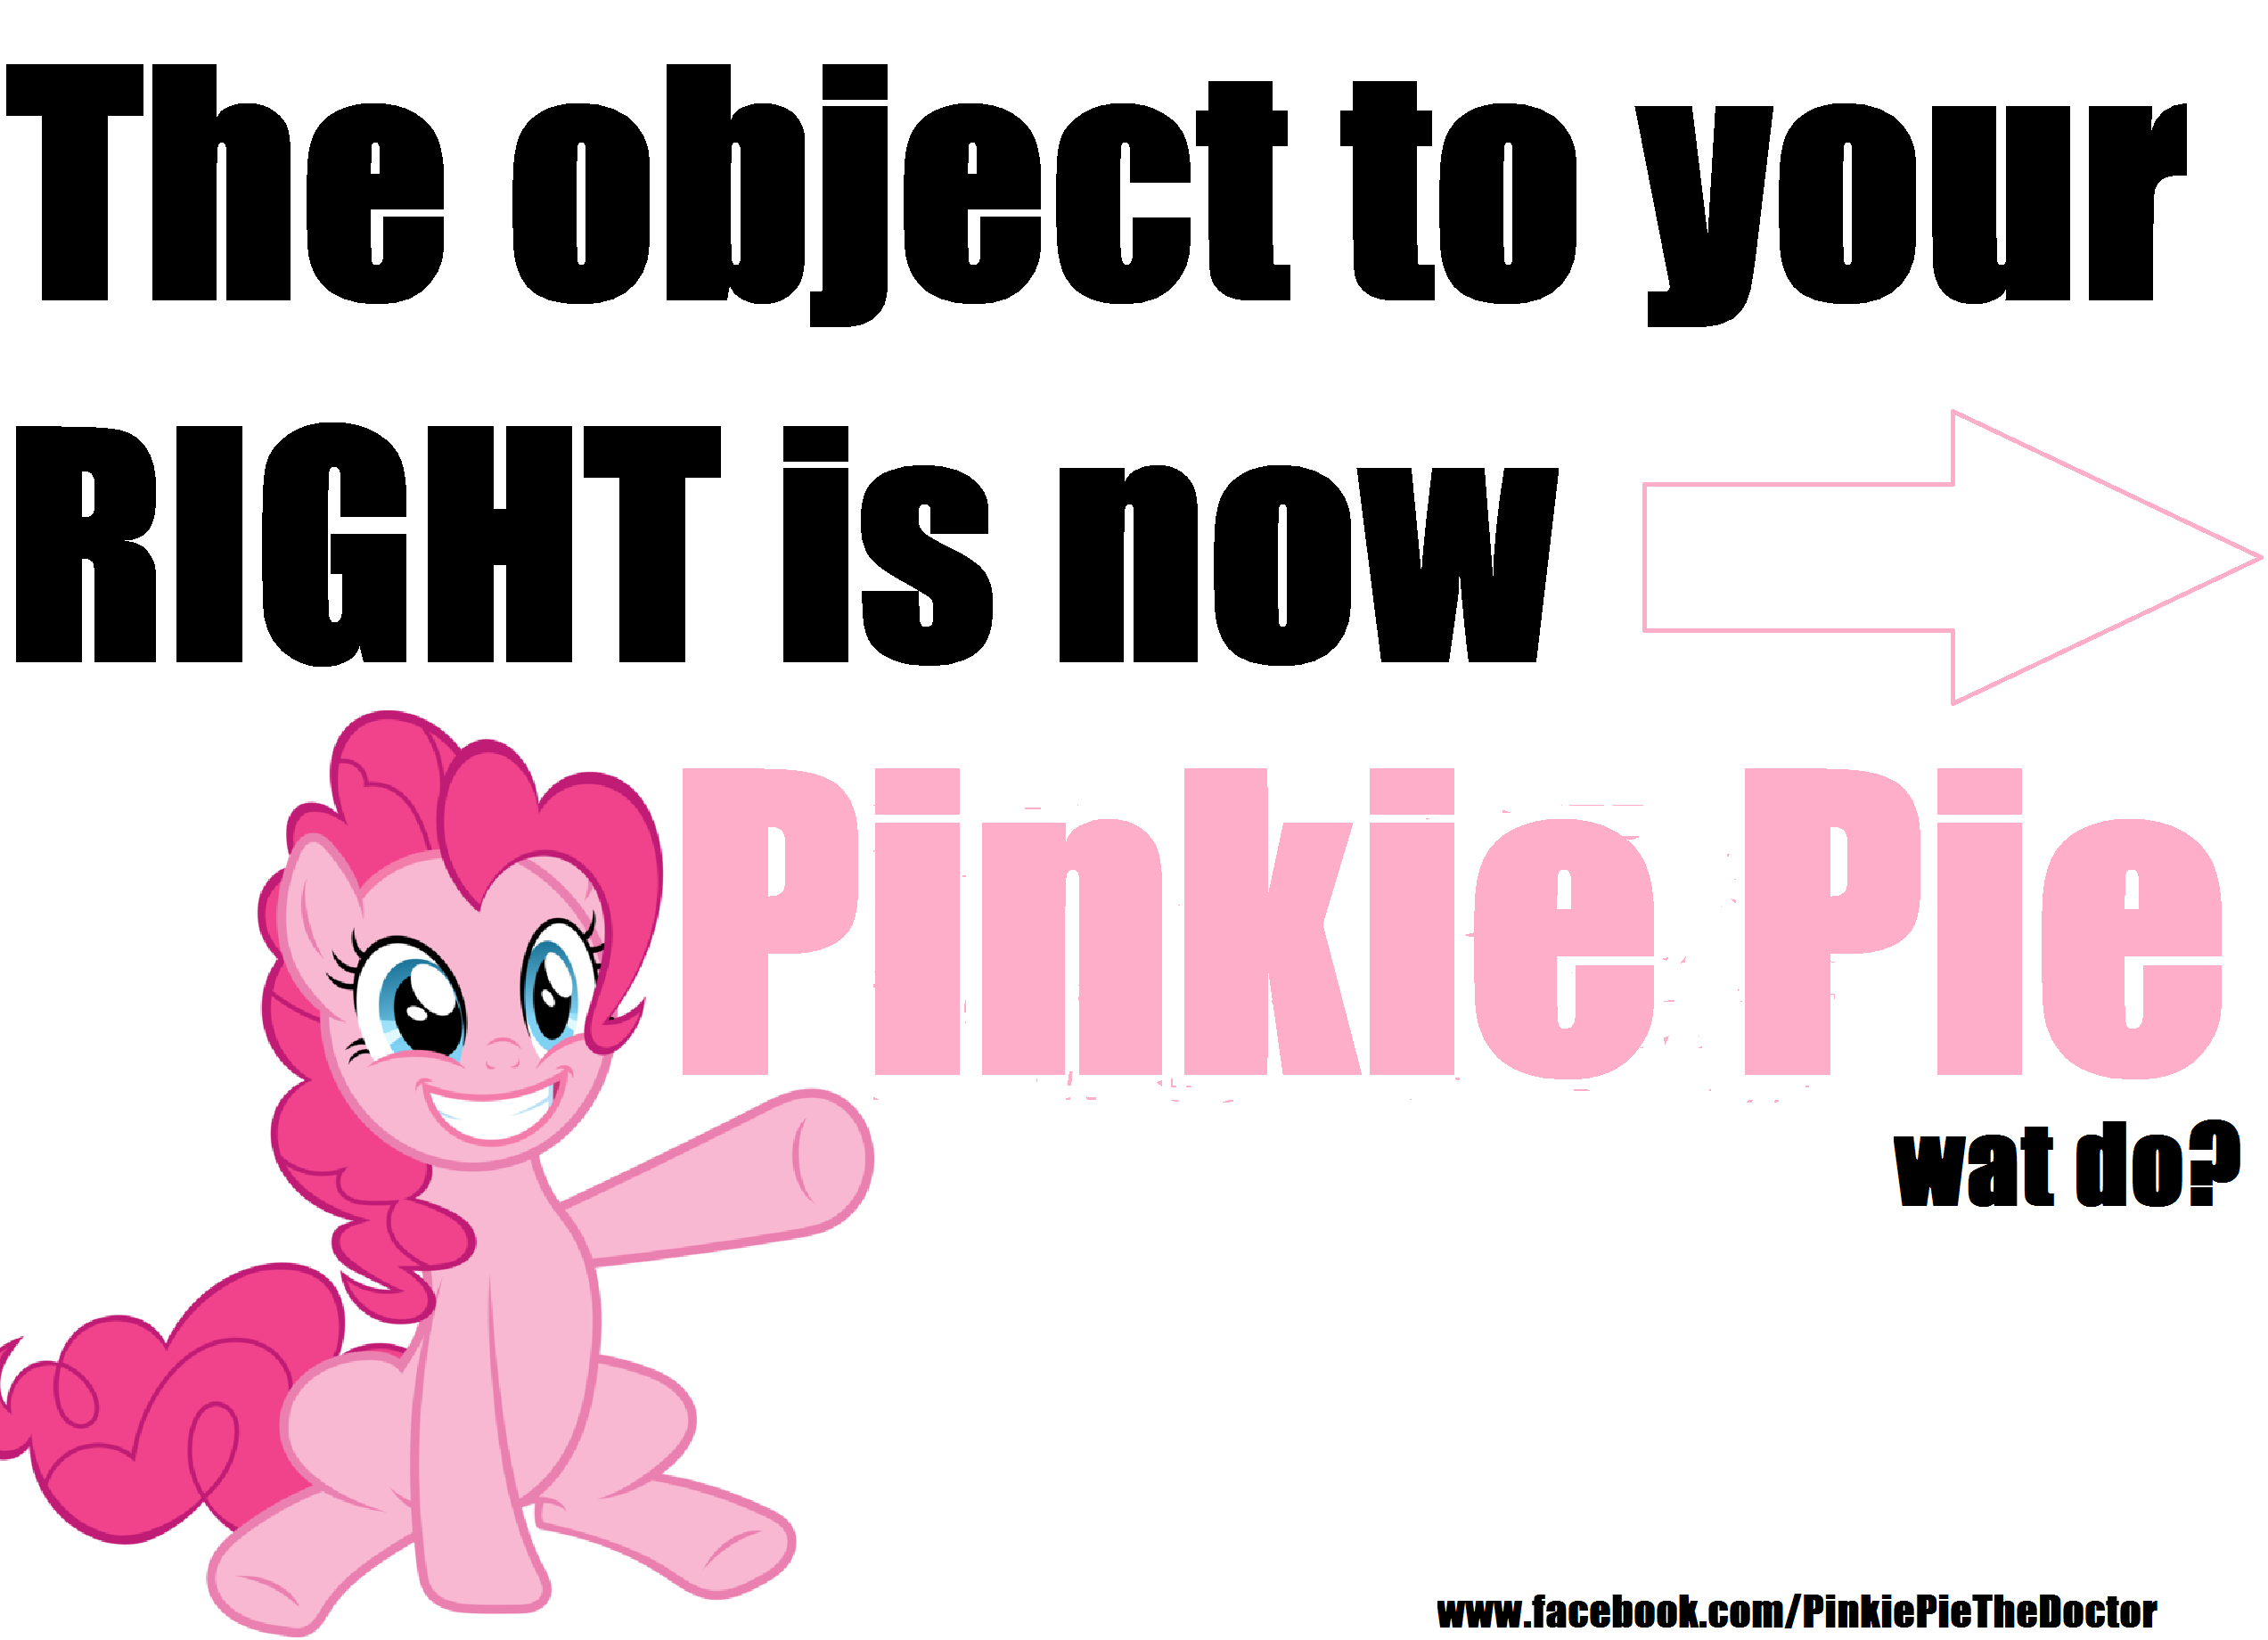 Pinkie Pie Object To Right My Little Pony Friendship Is Magic